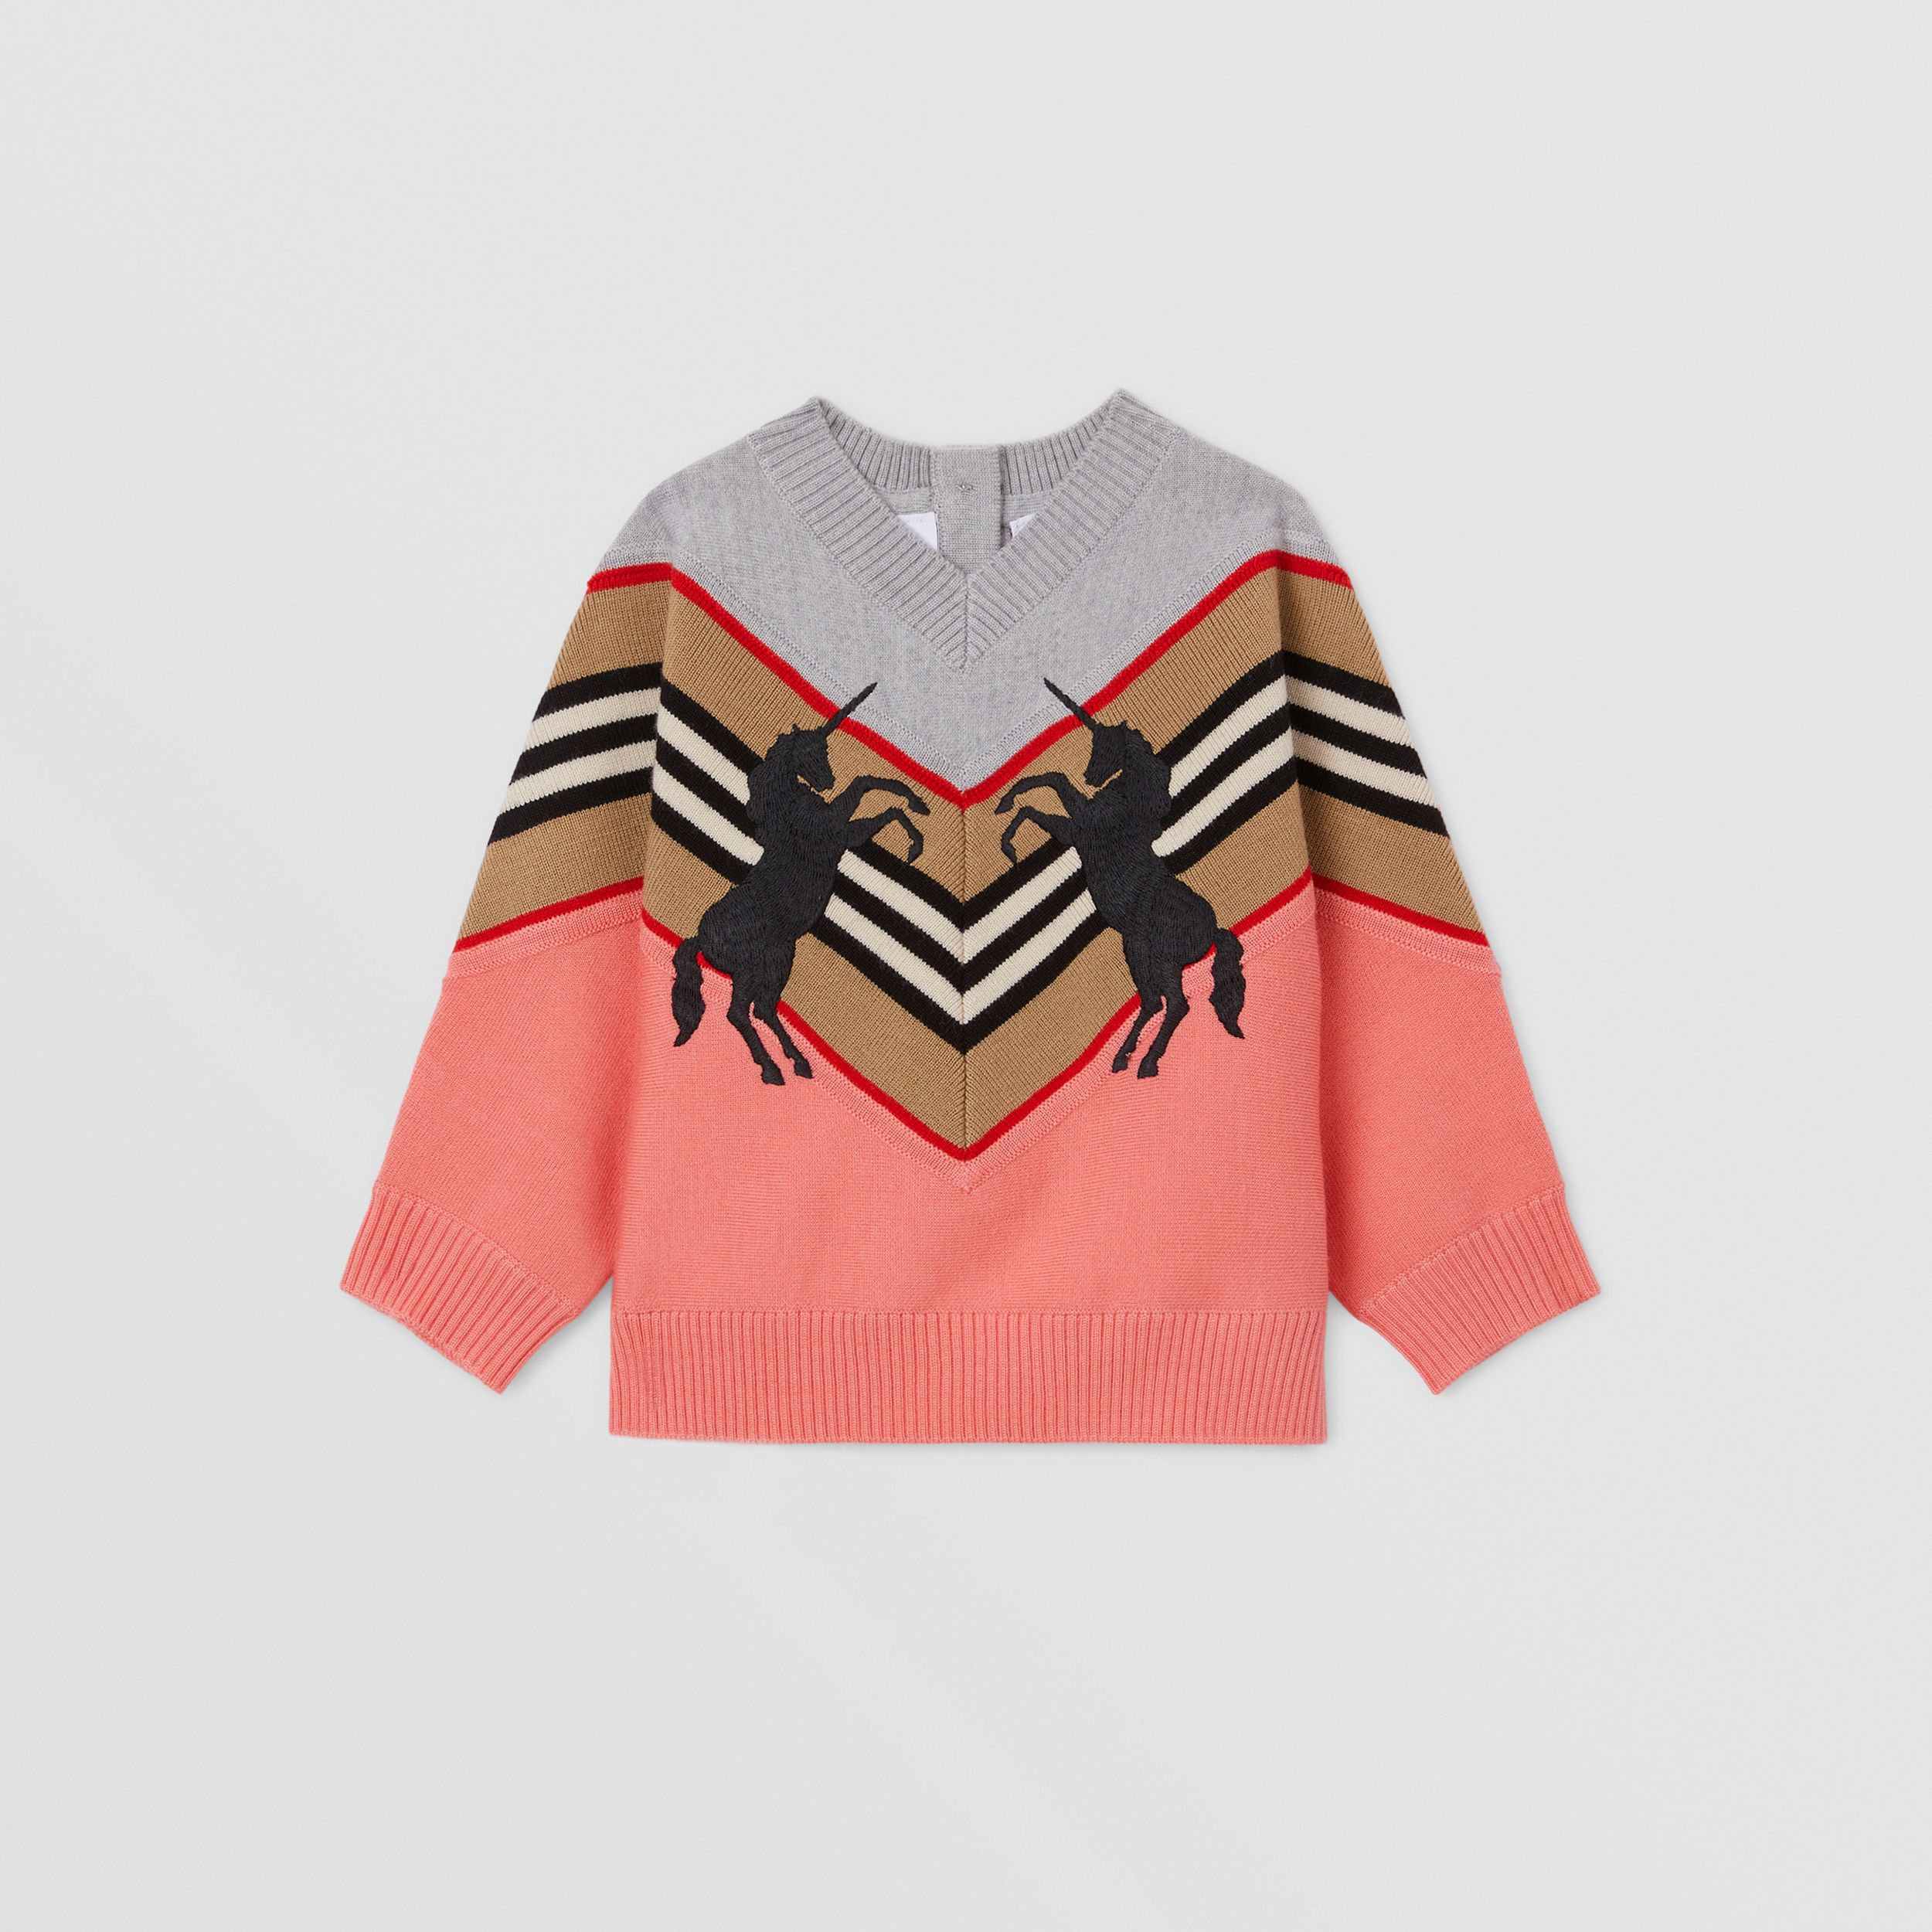 Unicorn Embroidered Technical Wool Sweater in Peach - Children | Burberry - 1